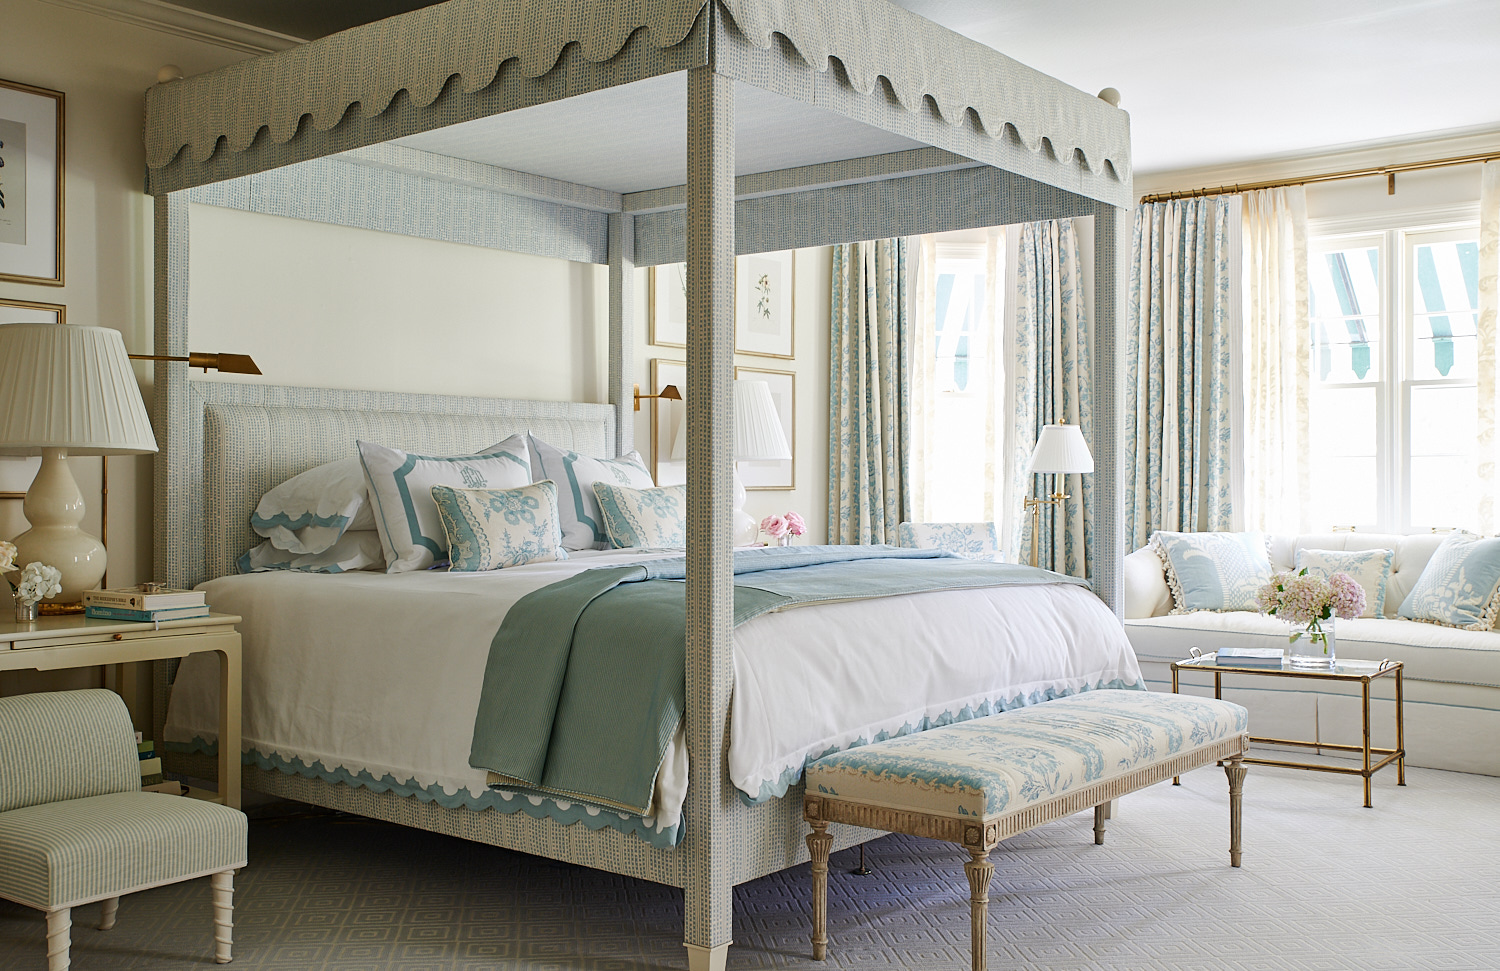 Upholstered bed canopy, shams pillows, headboard, and upholstered bench